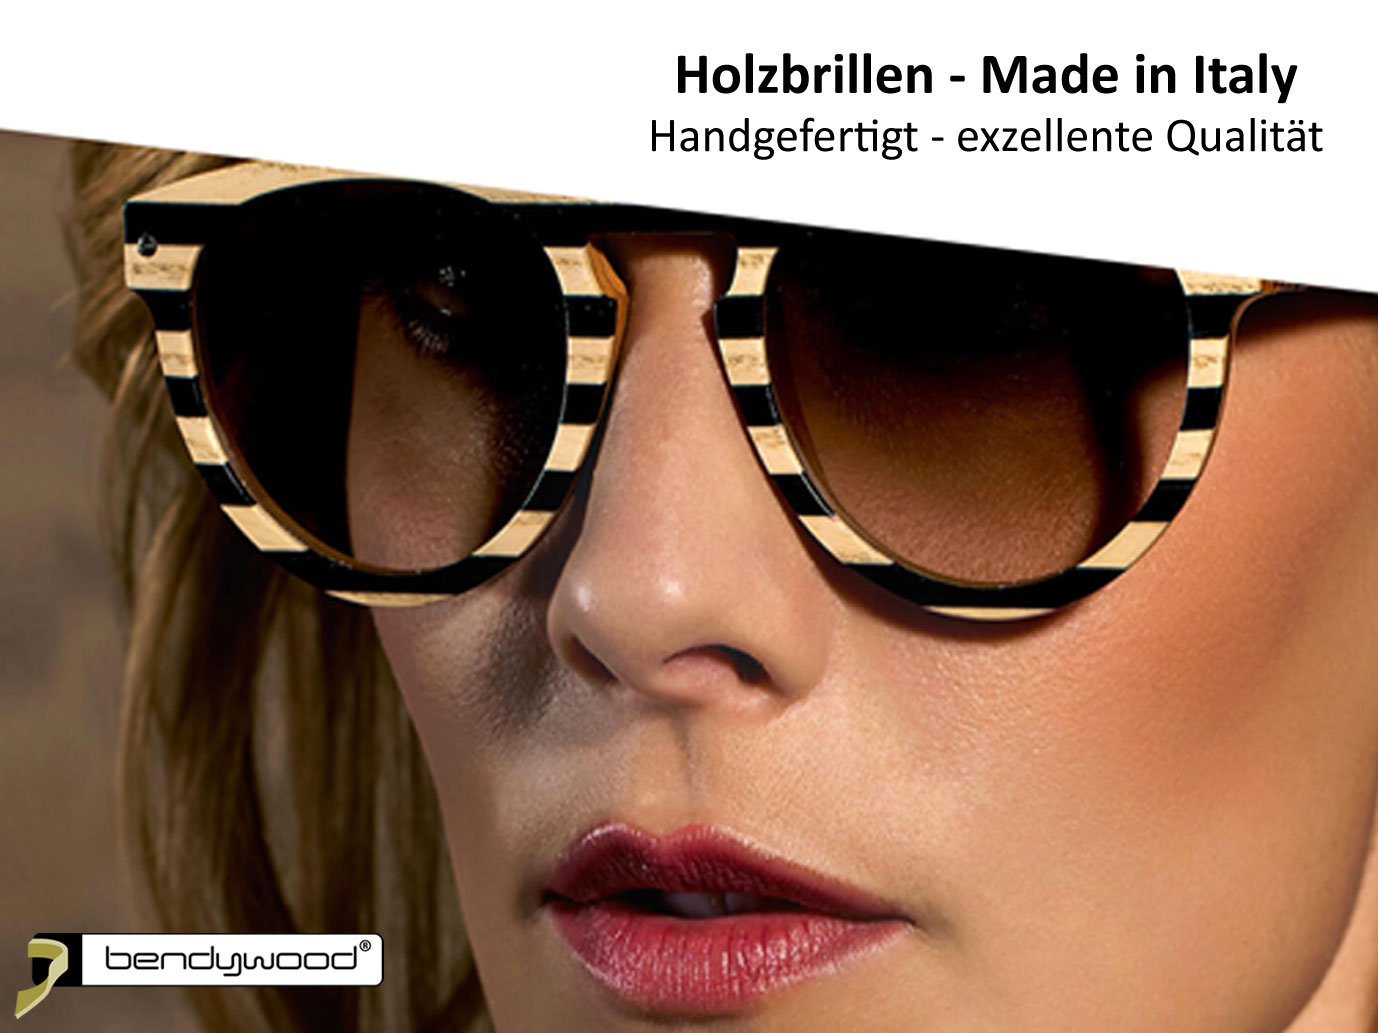 Holzbrillen in Bendywood® - Made in Italy